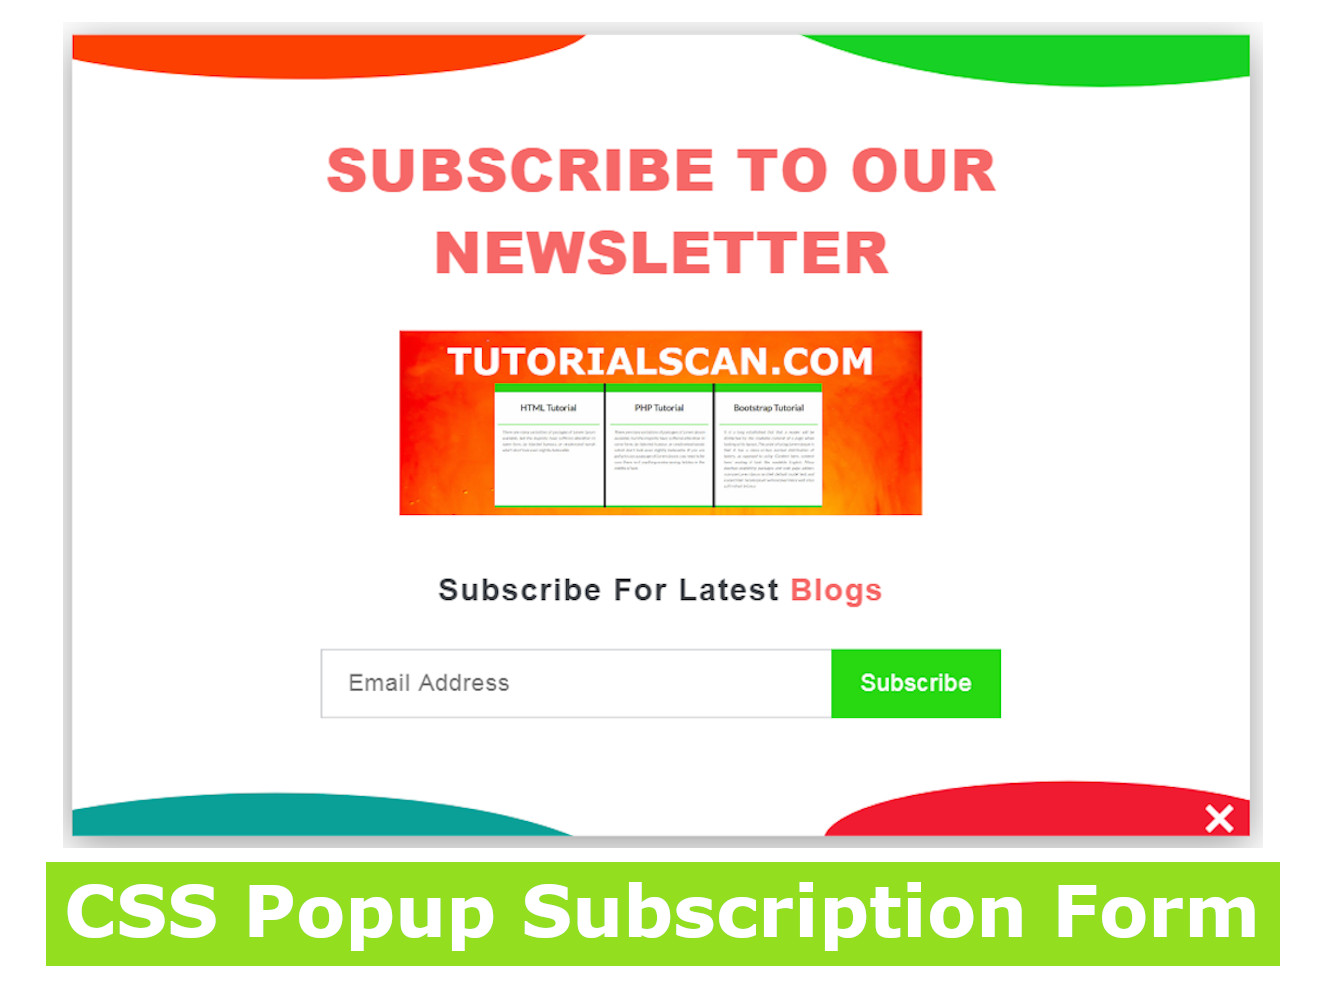 CSS Popup Subscription Form